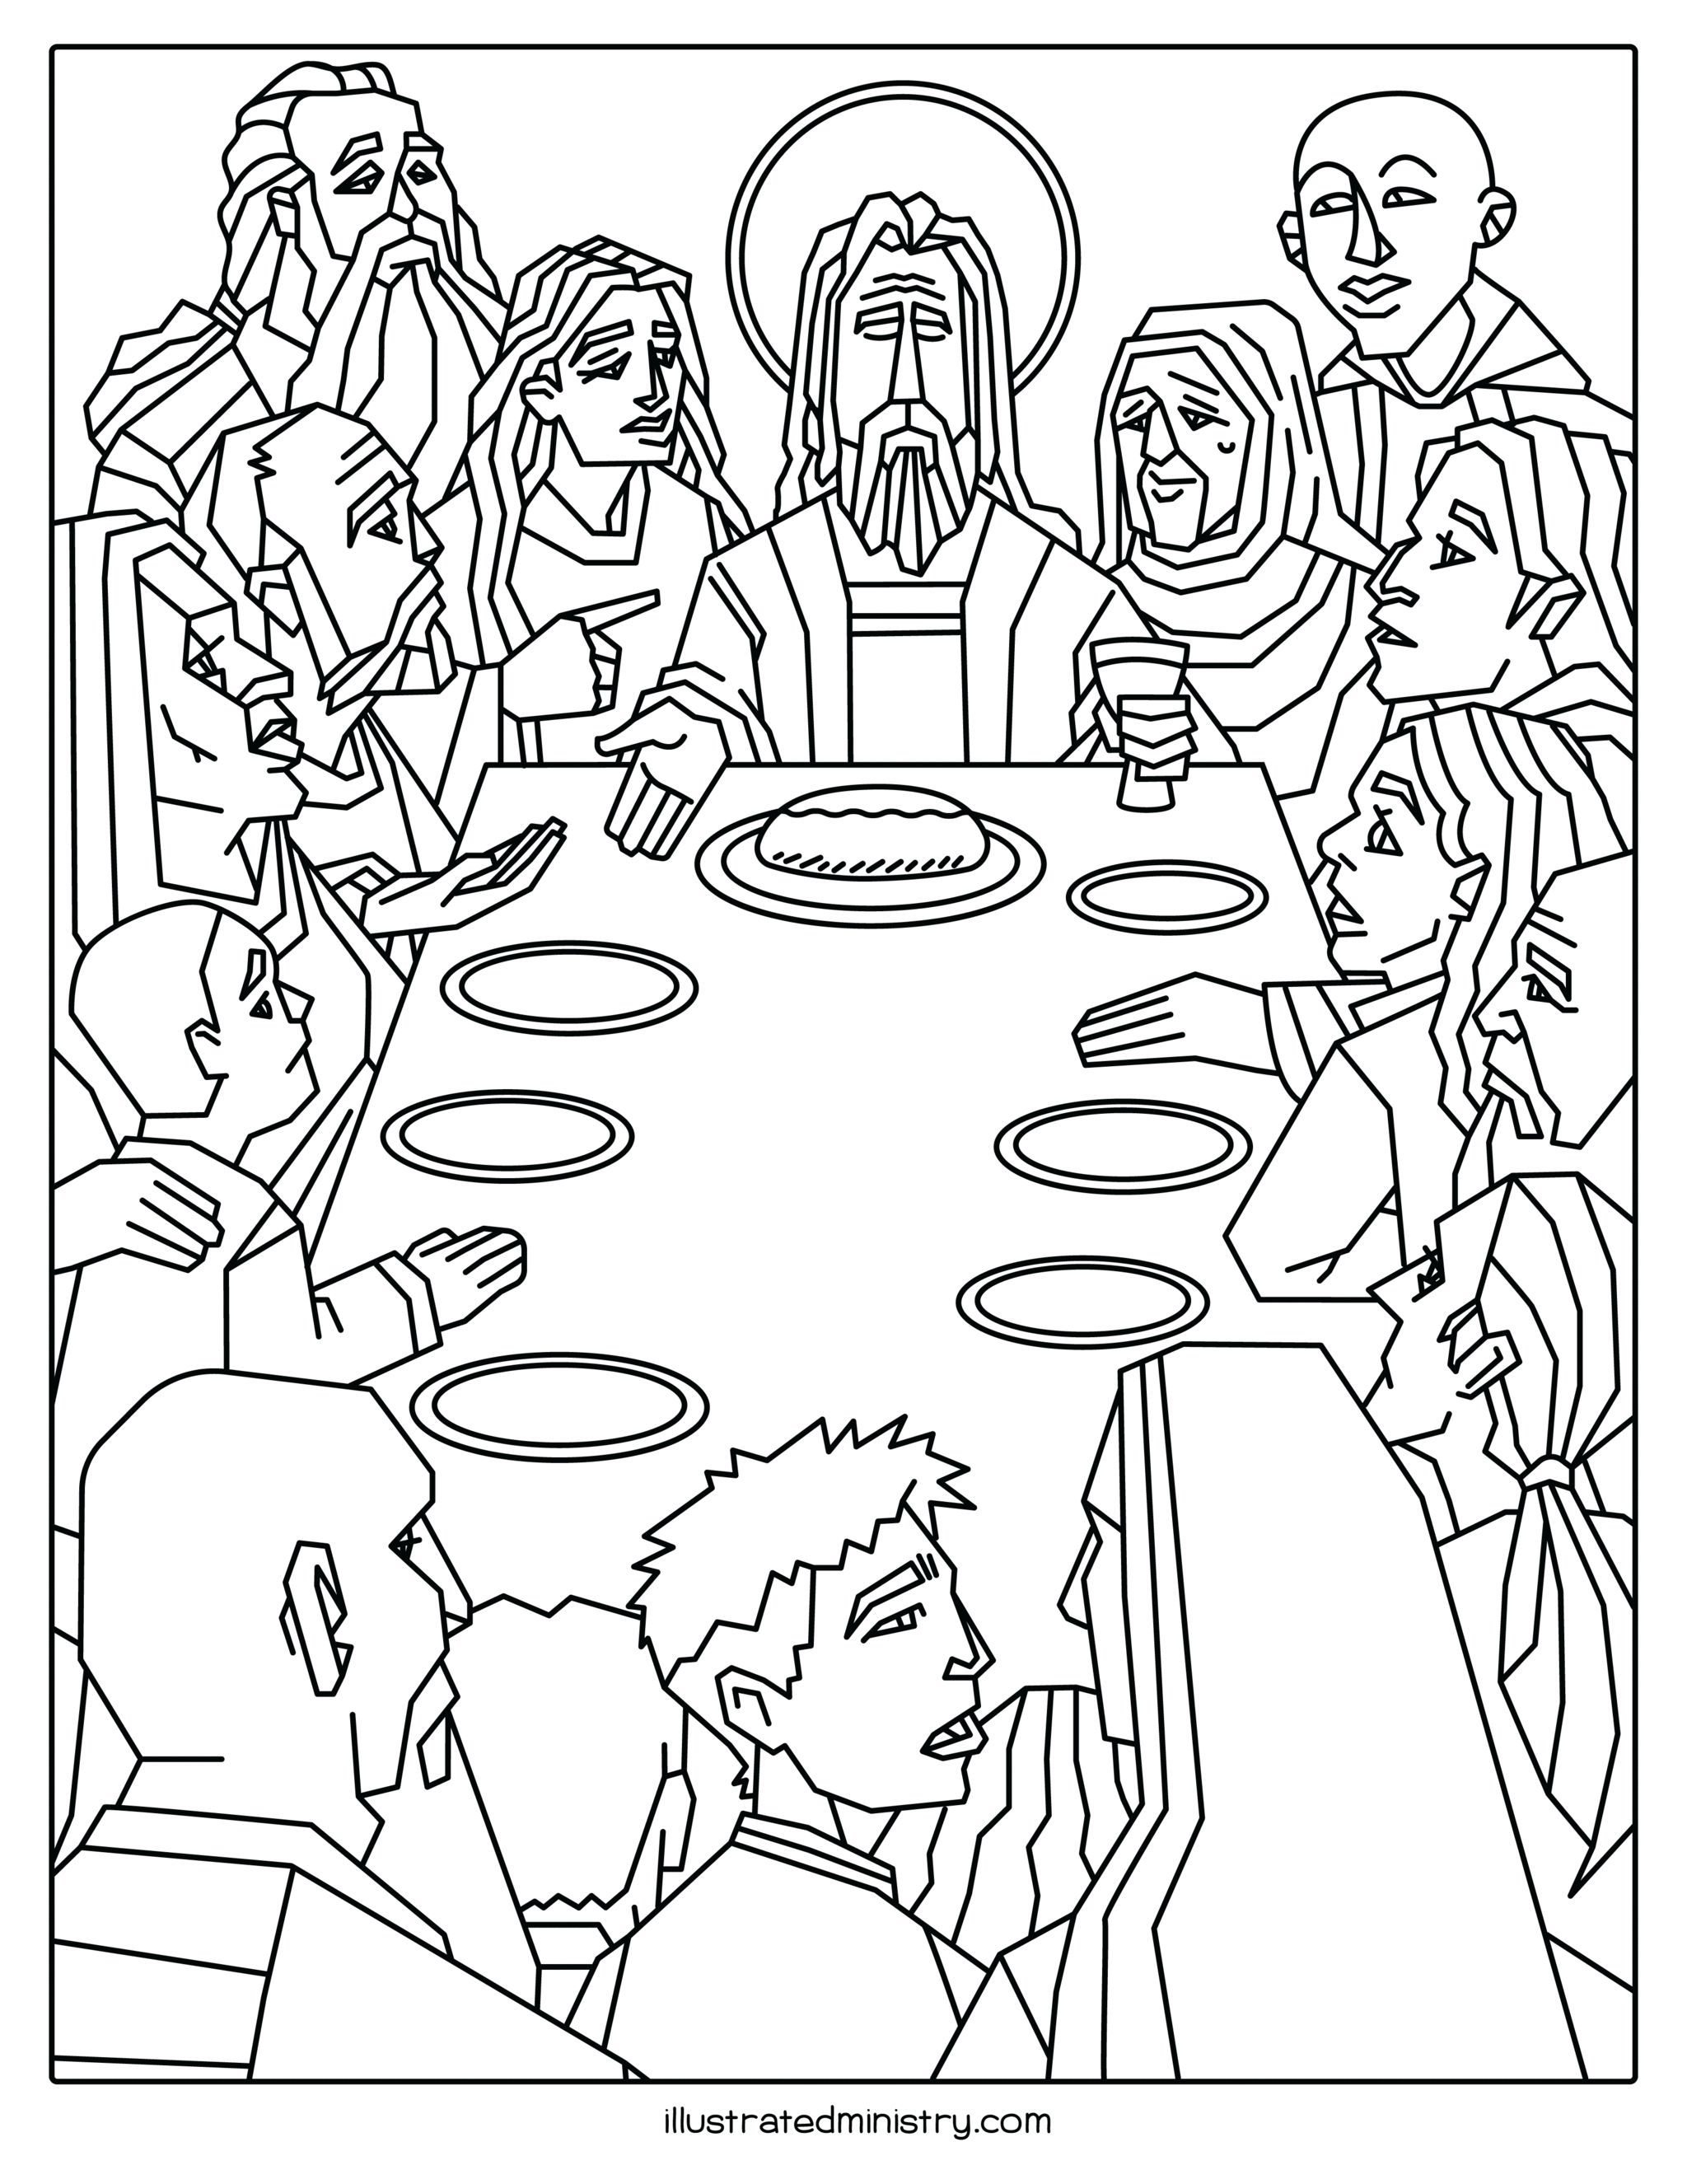 last supper coloring page illustrated worship childrens bundle world communion supper coloring last page